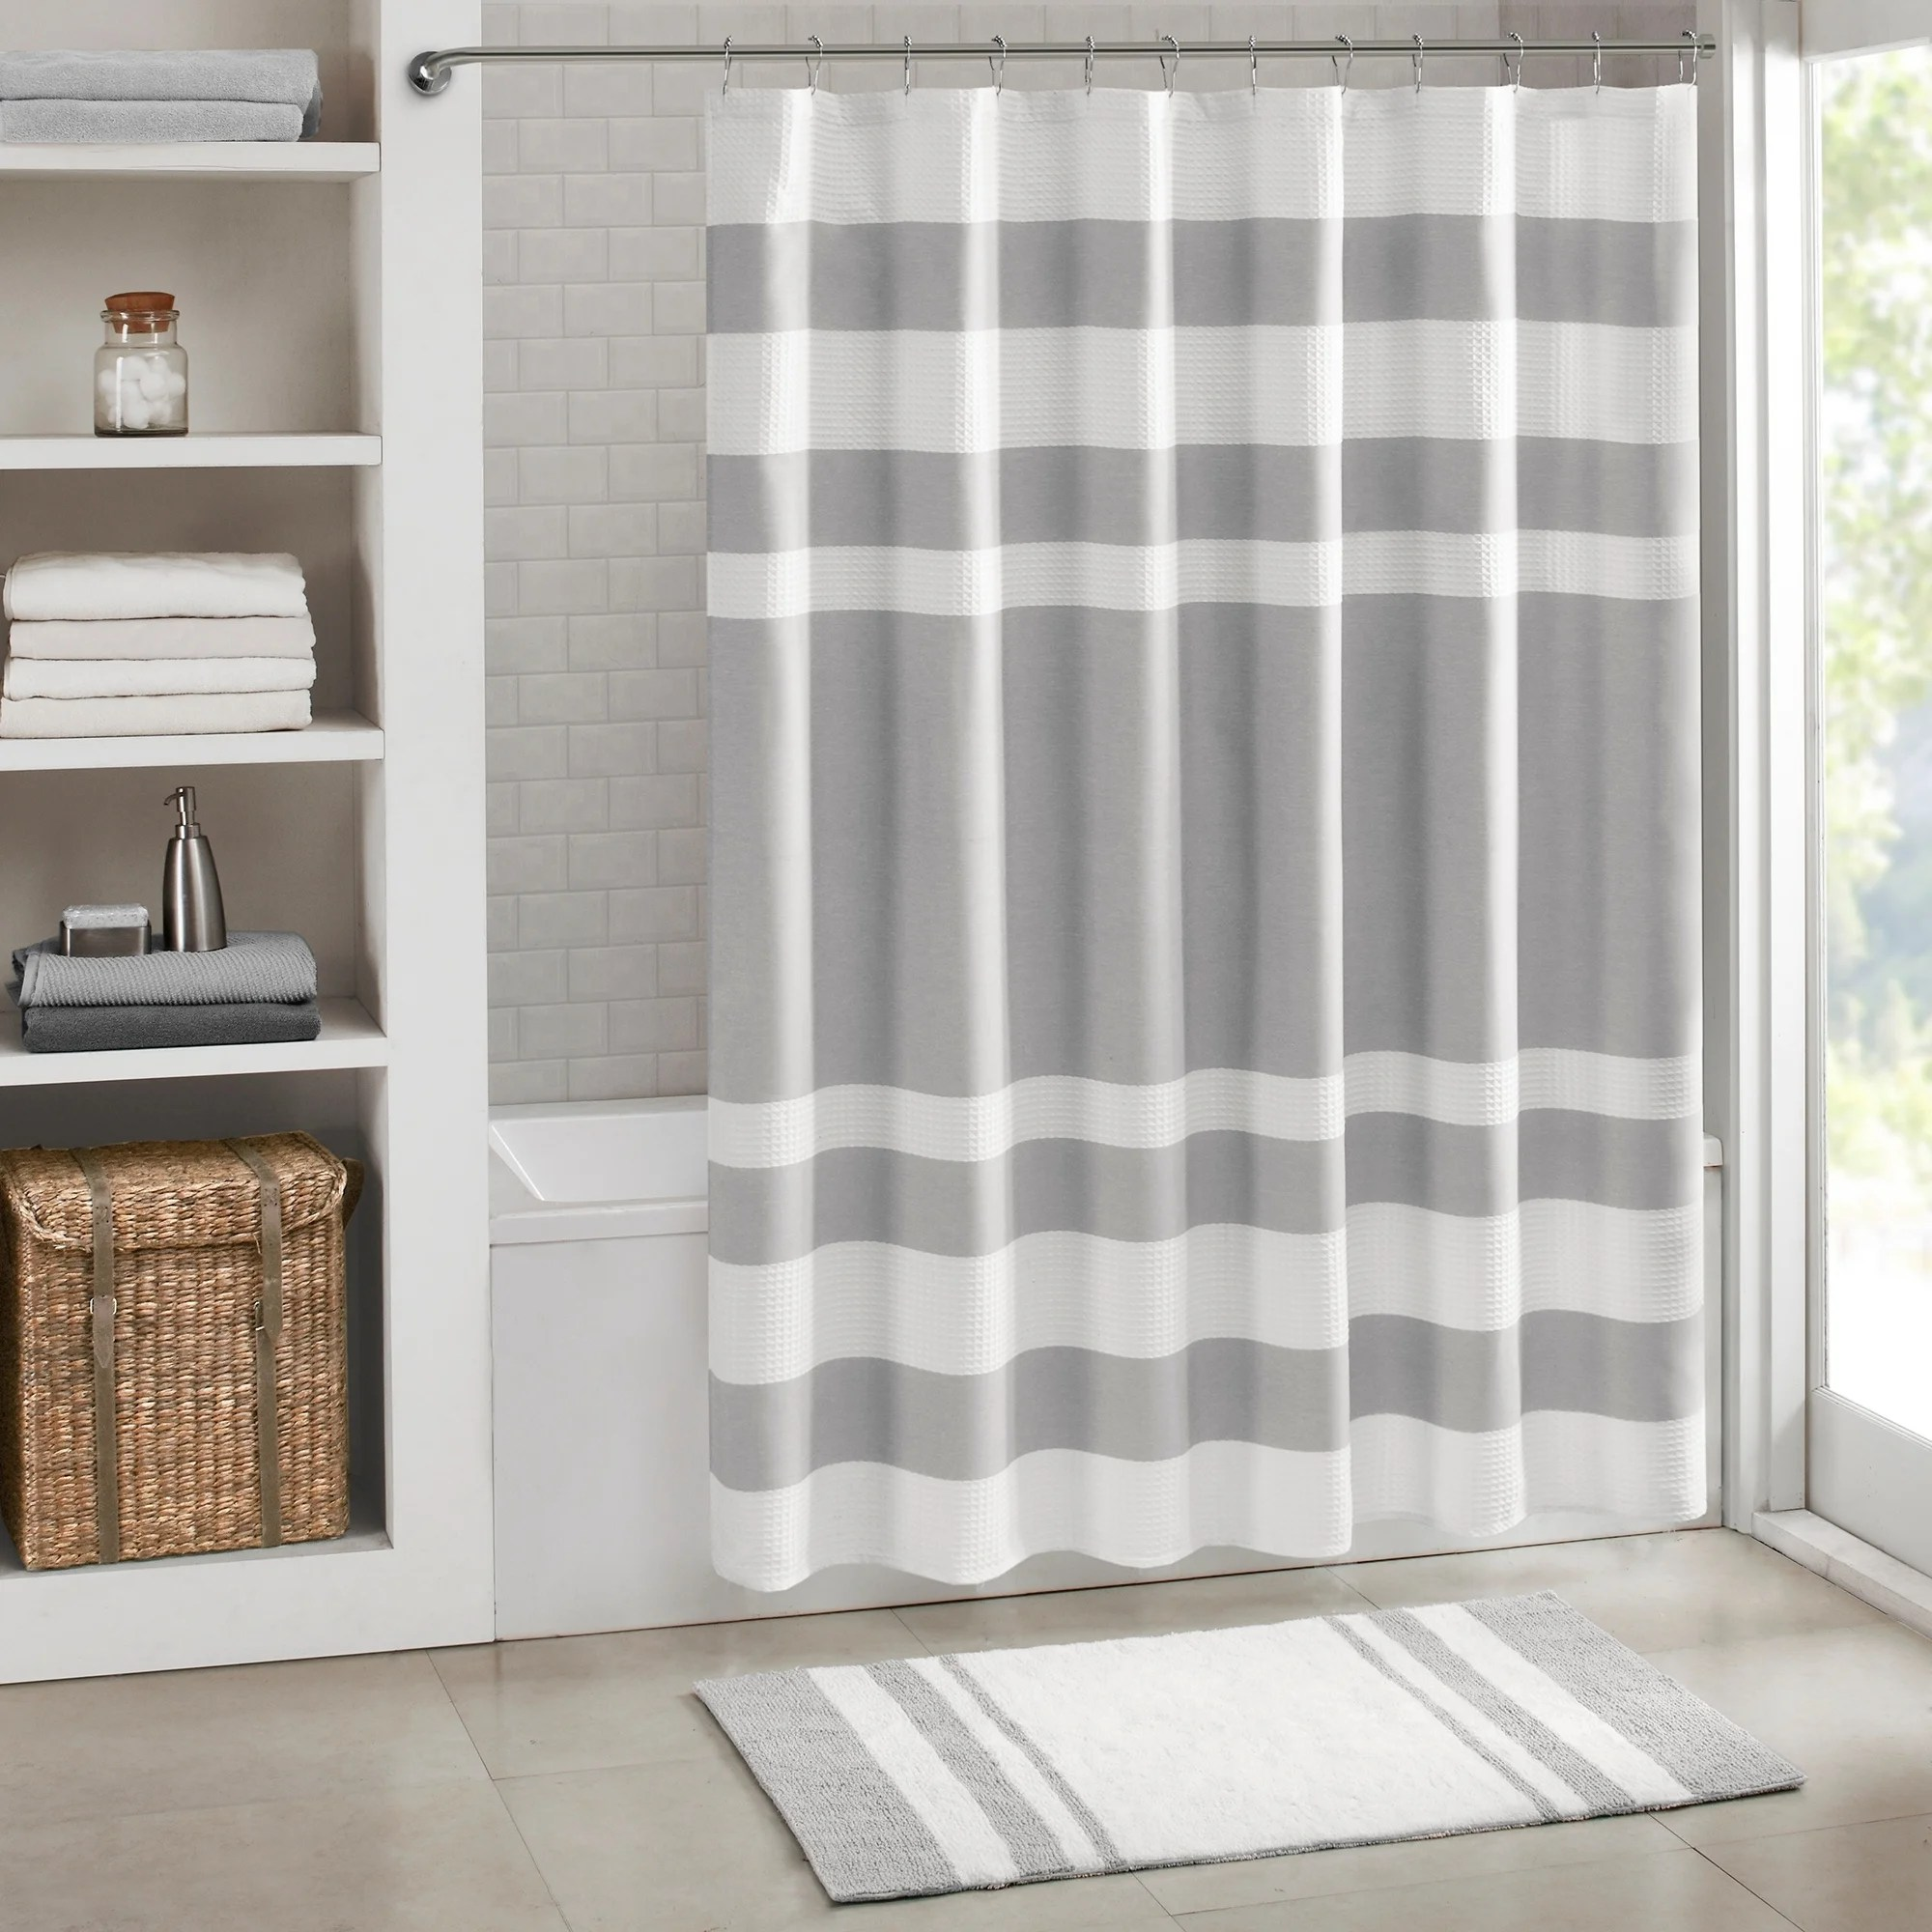 108 Inch Wide Shower Curtain Porch Den Niantic Shower Curtain With 3m Treatment